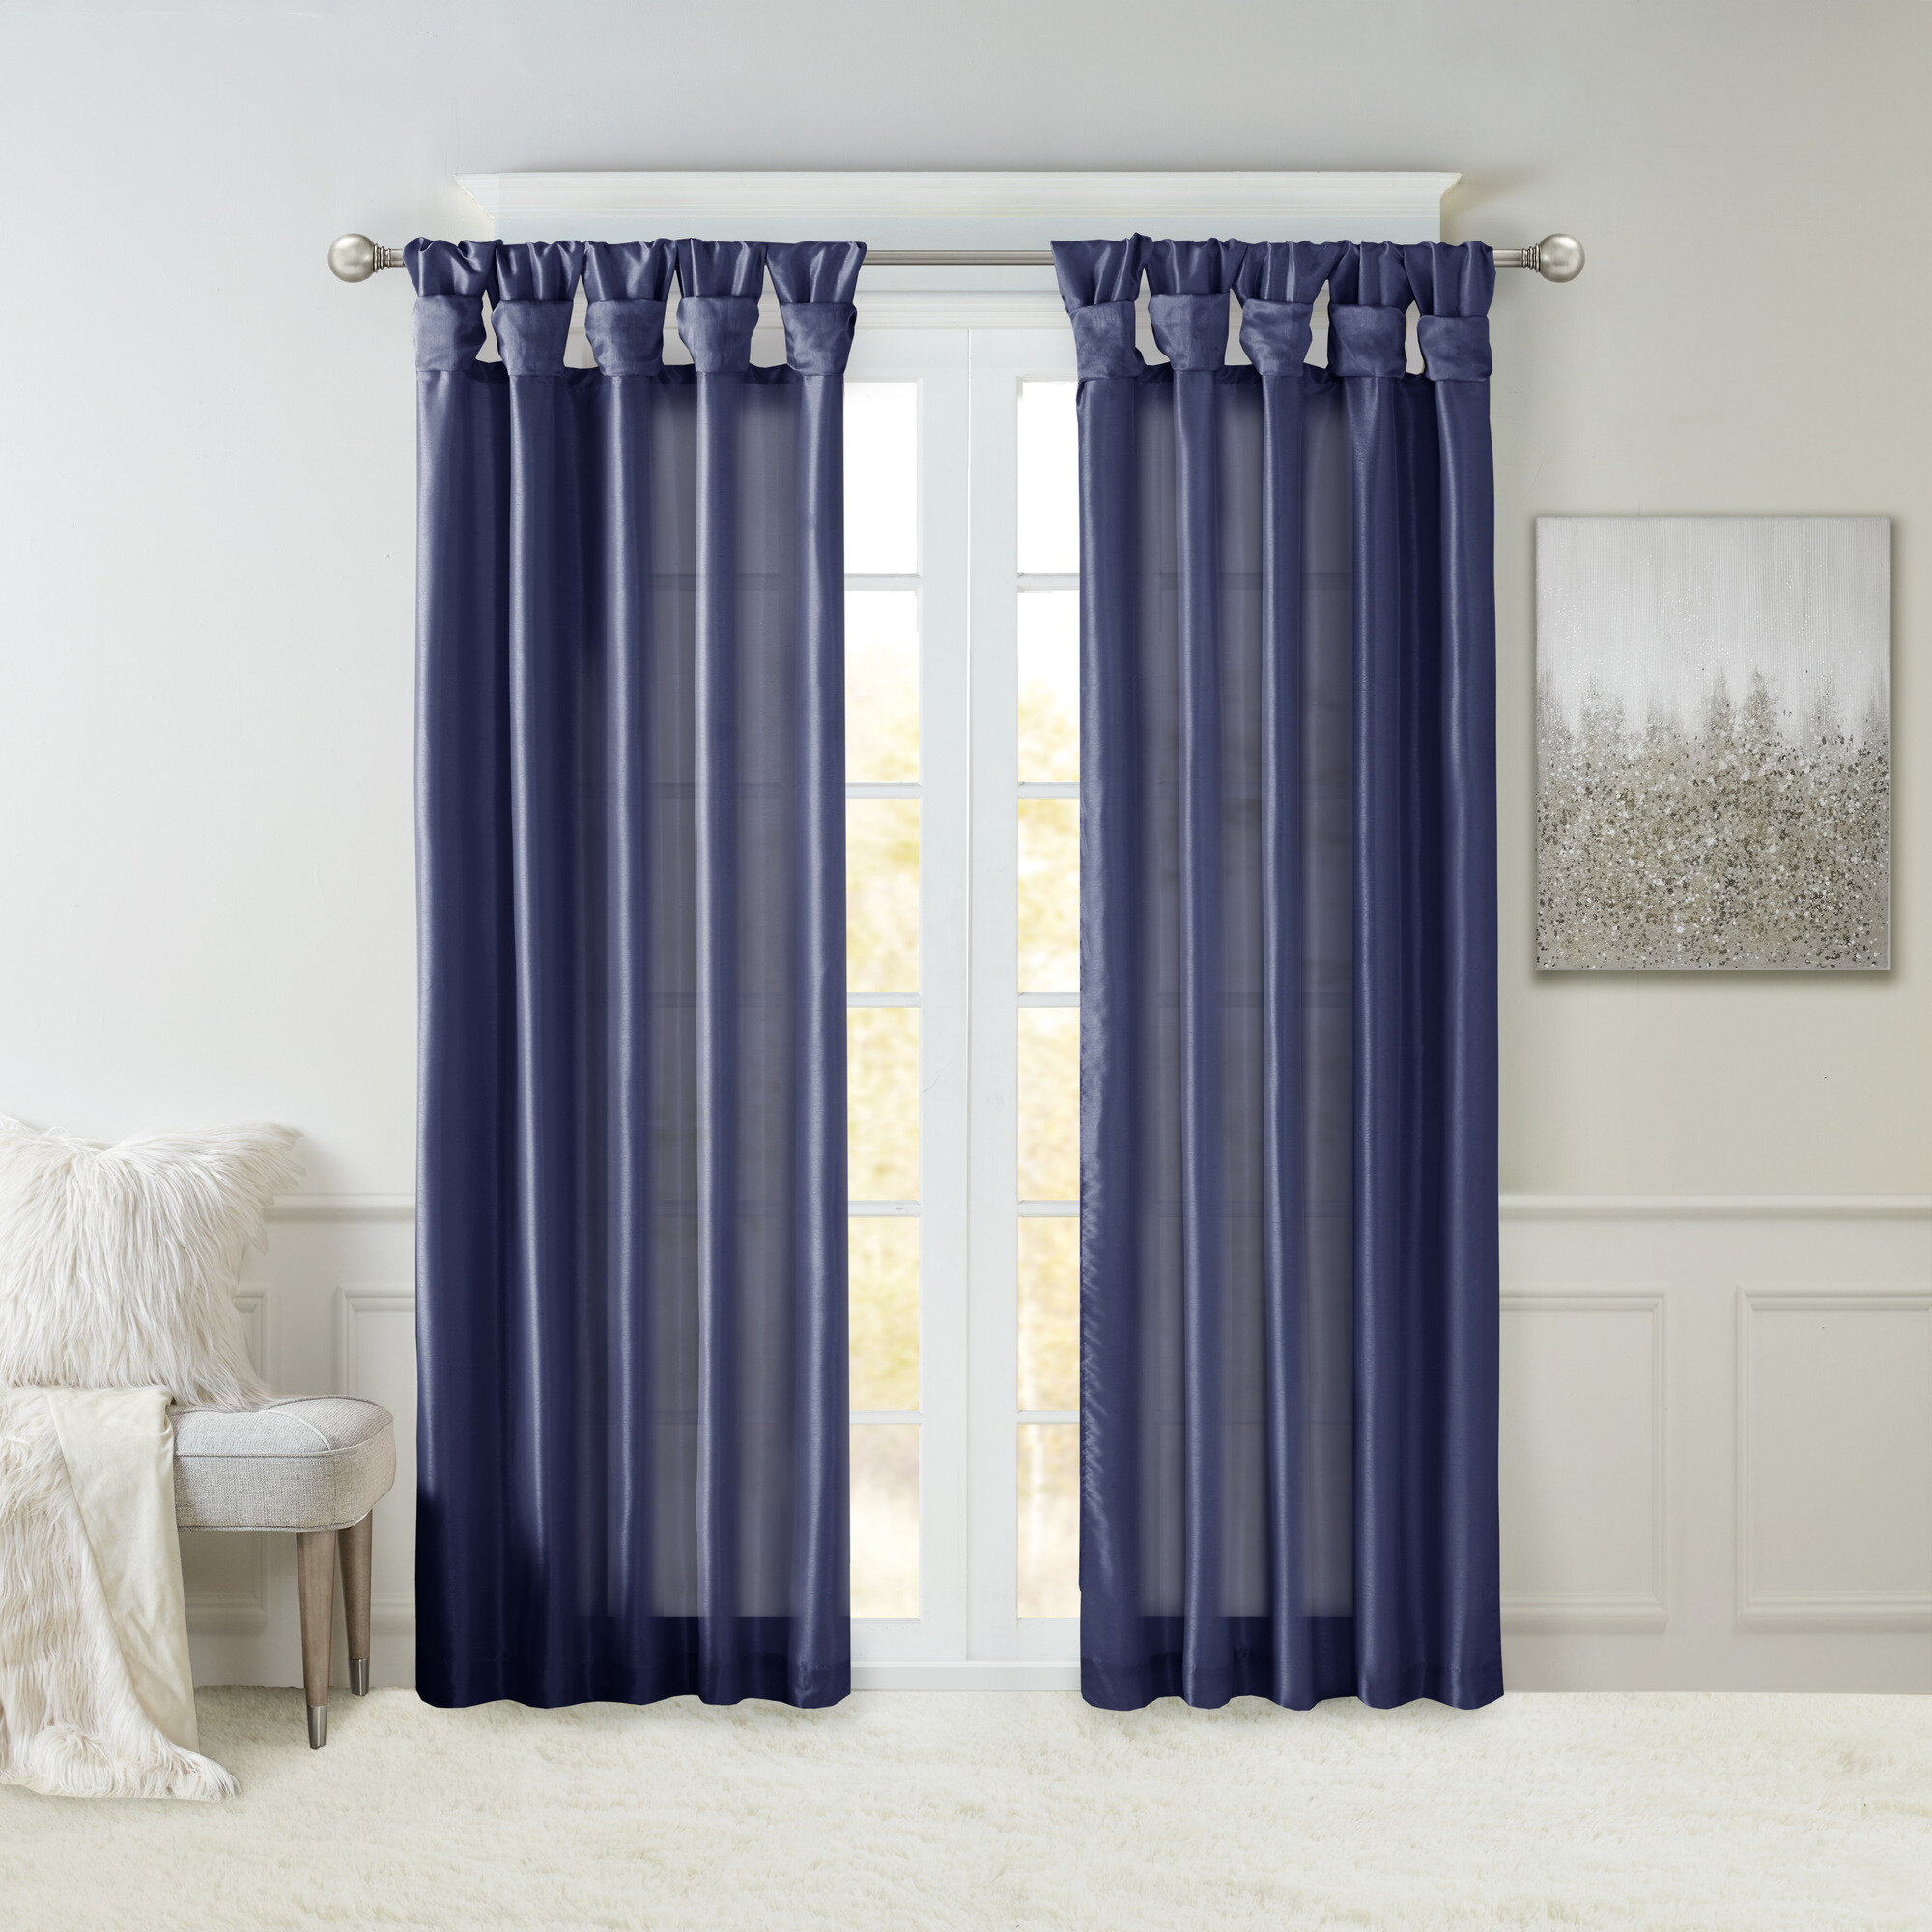 Rivau Solid Tab Top Single Curtain Panel Inside Tassels Applique Sheer Rod Pocket Top Curtain Panel Pairs (Gallery 22 of 30)